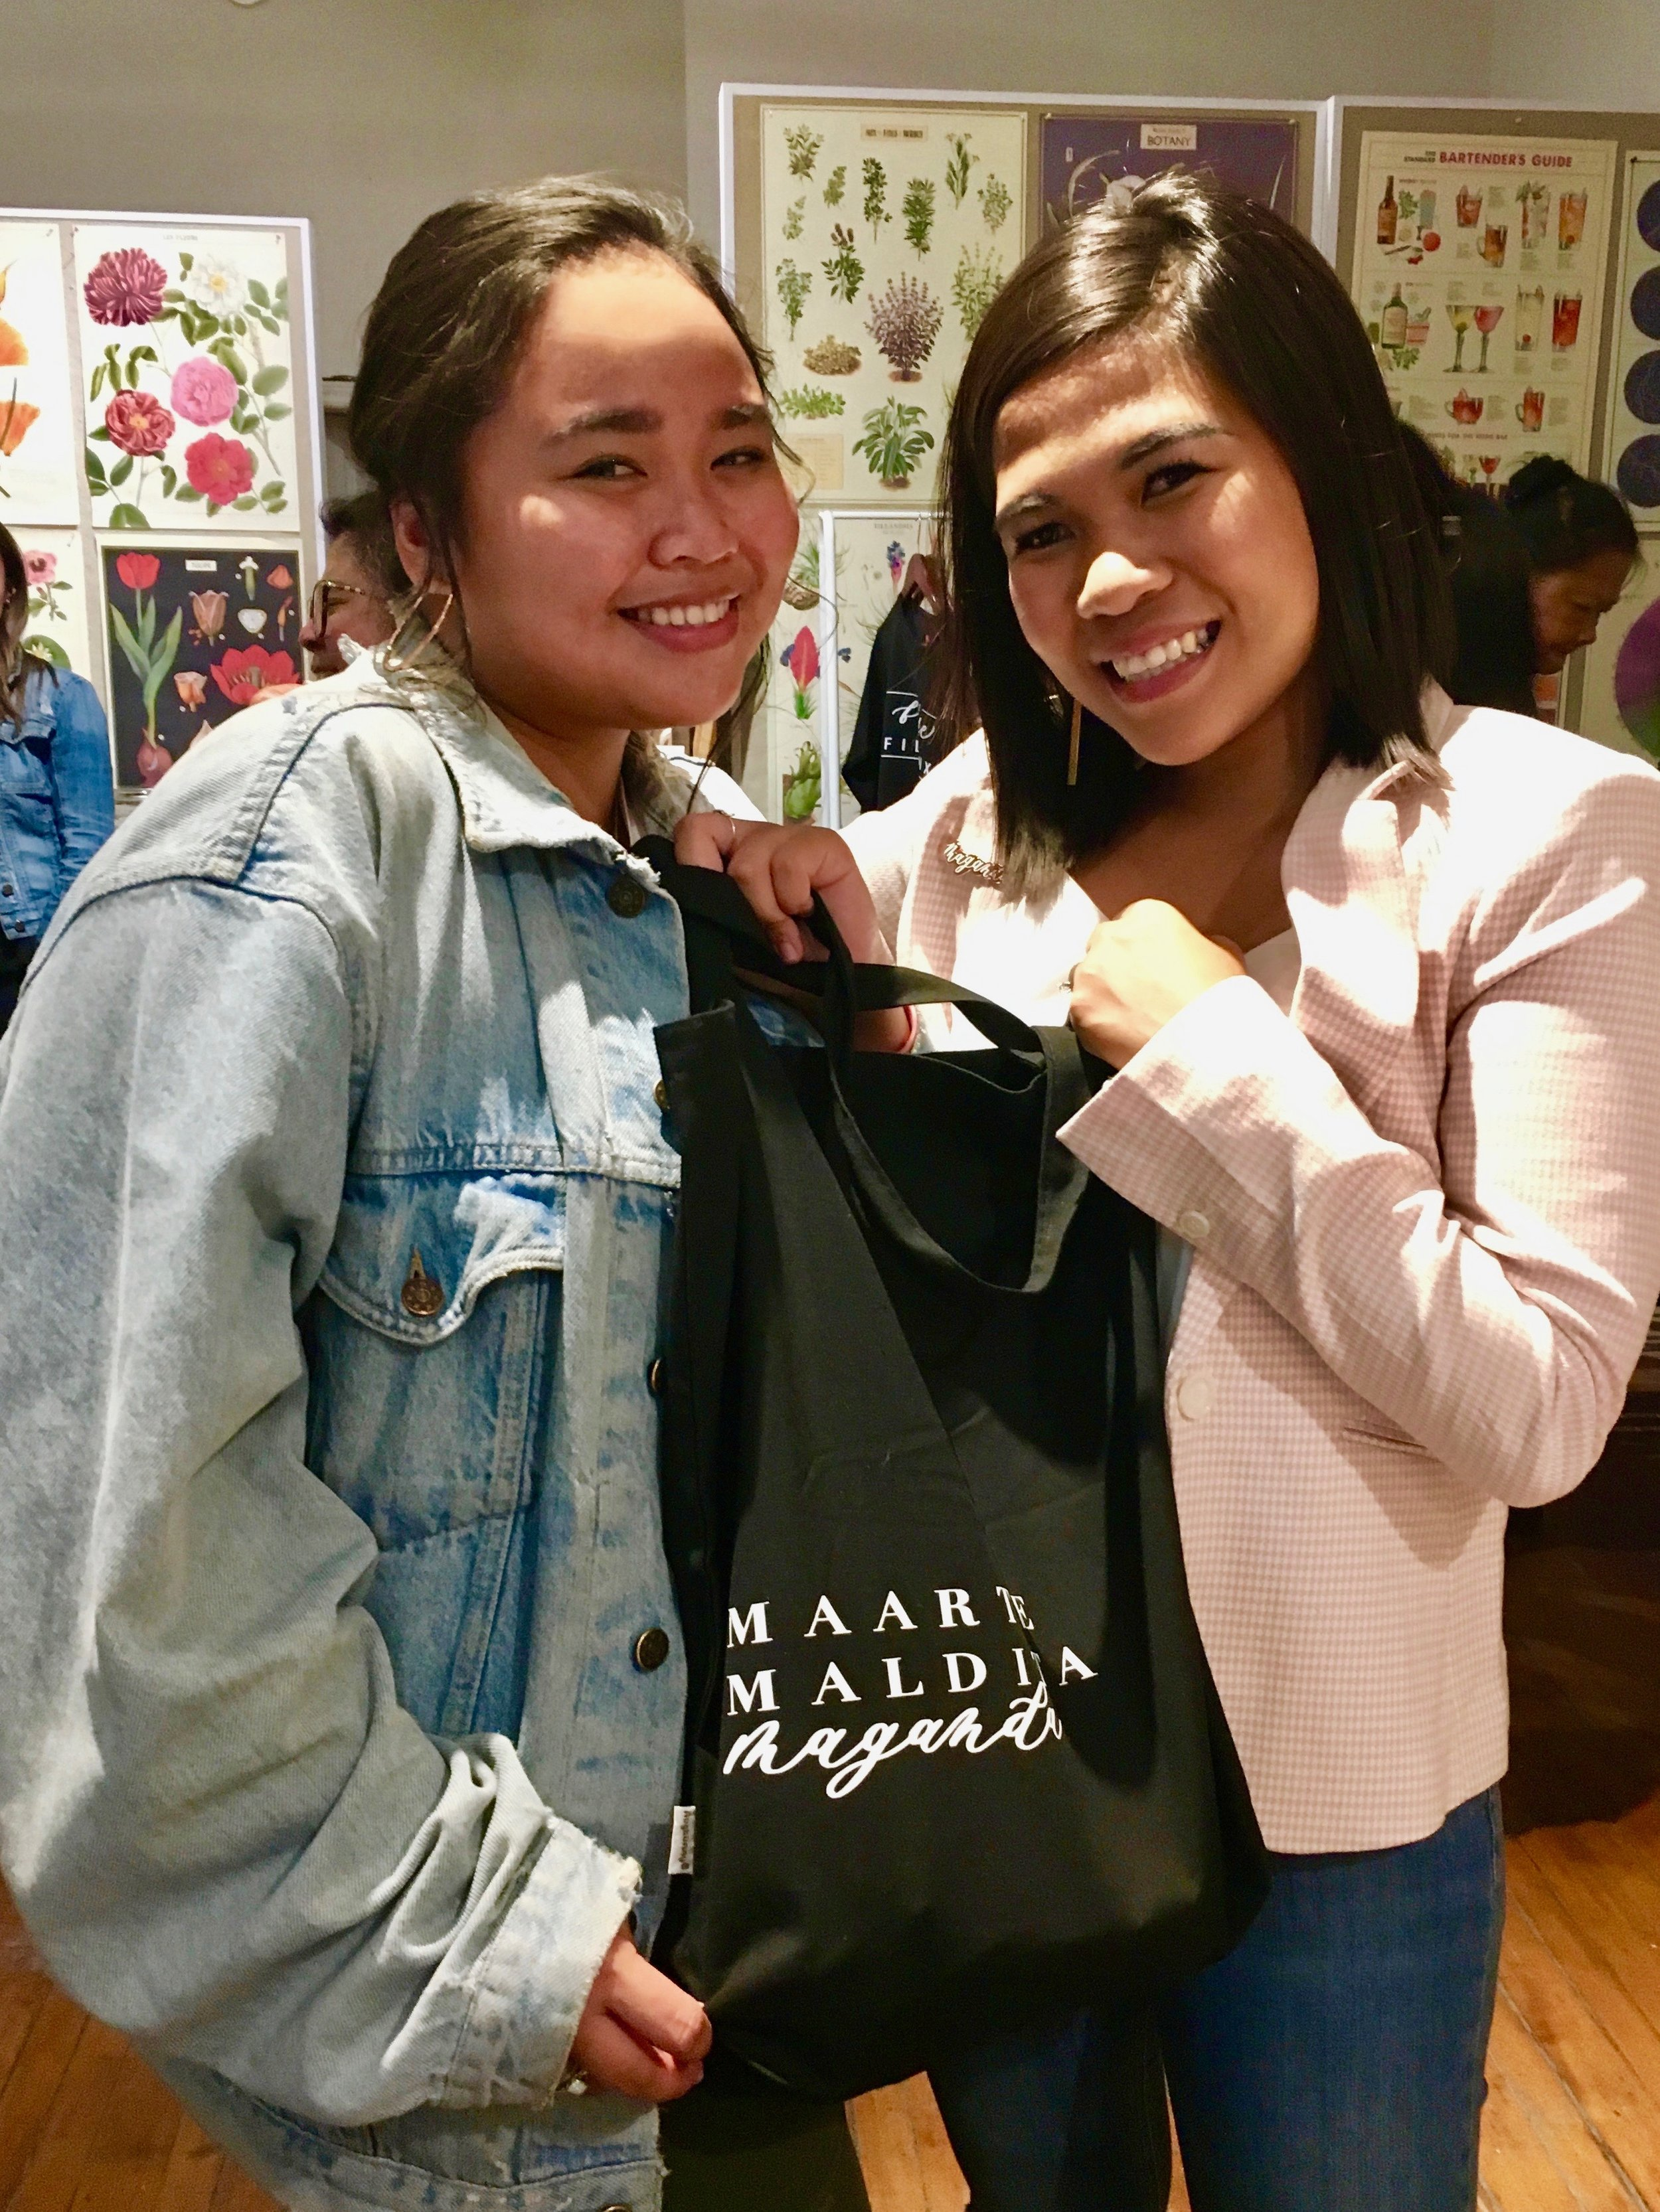 Khela Maquiling with Galit and her new Maarte, Maldita, Maganda tote bag. Photo by J. Austria